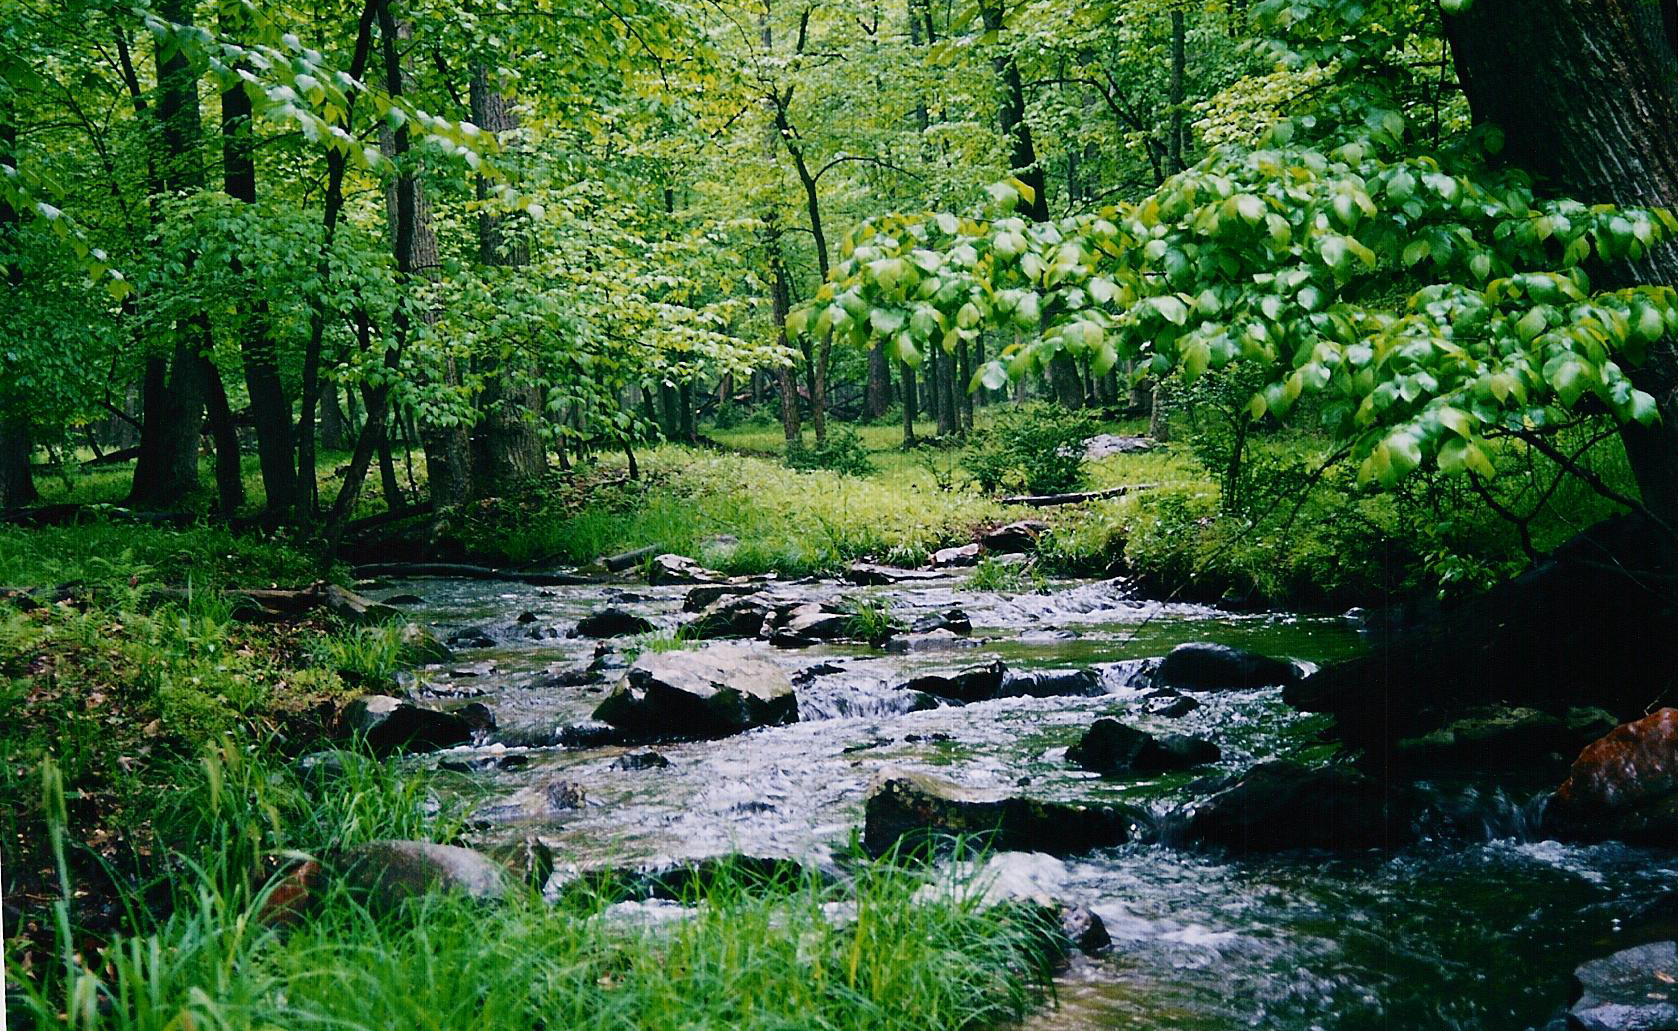 stream through trees 2, June 2003 - h. richards, 2003.JPG